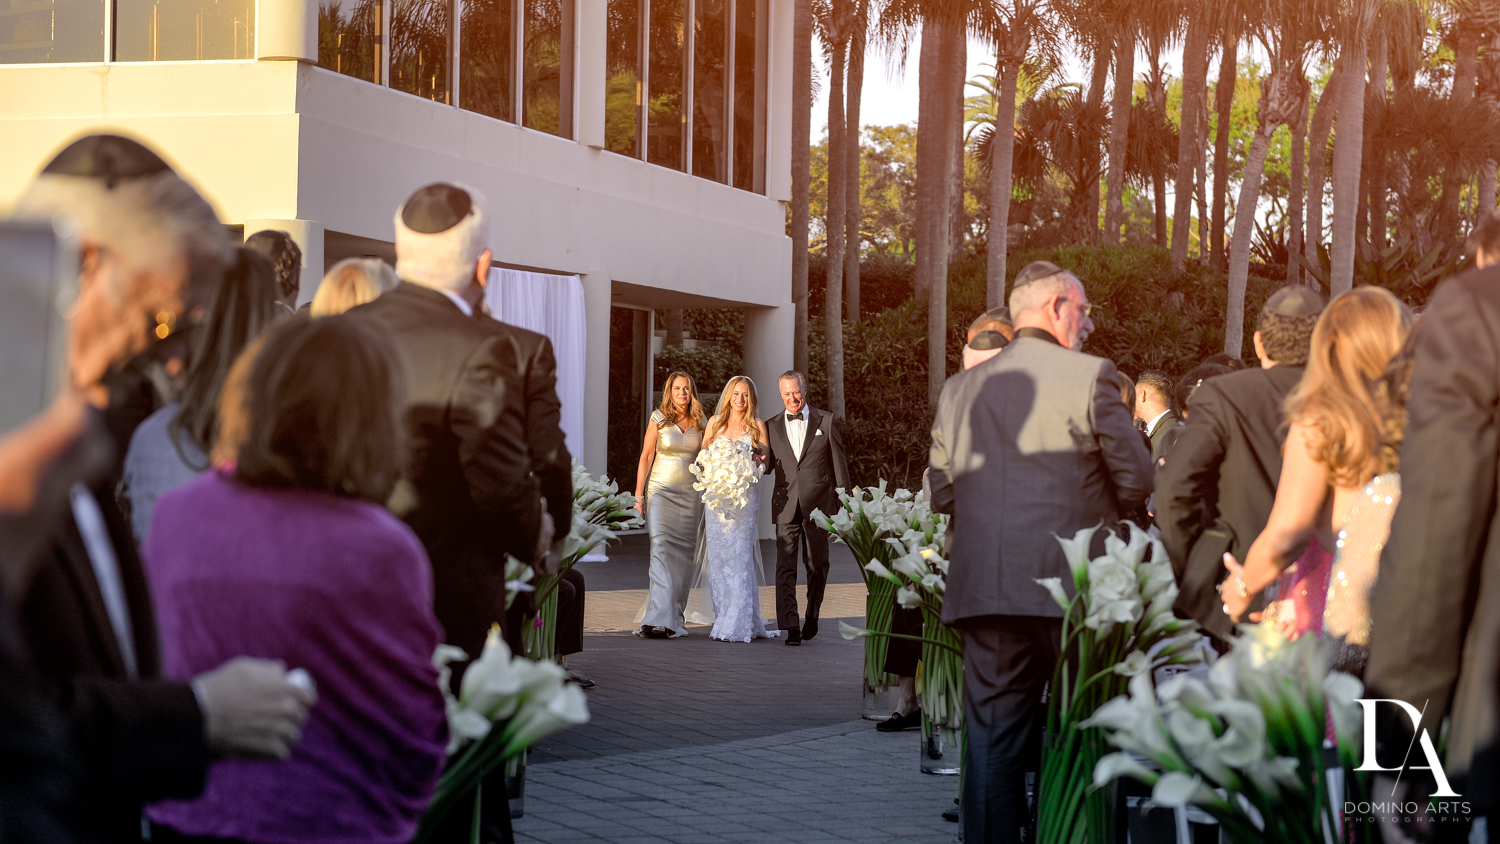 ceremony at Sunset Wedding at Boca Rio Golf Club by Domino Arts Photography